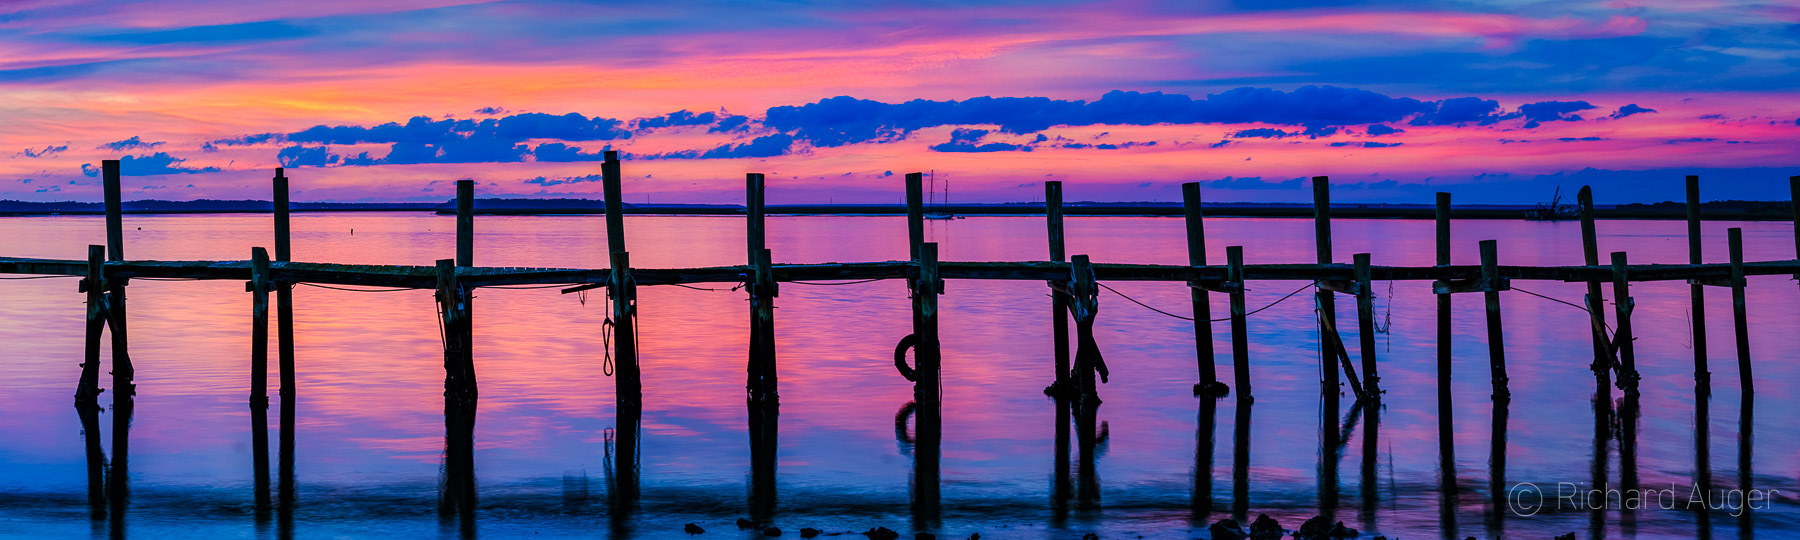 Cumberland Sound, Fernandina Beach, Amelia Island, Florida, Dock, Sunset, Panorama